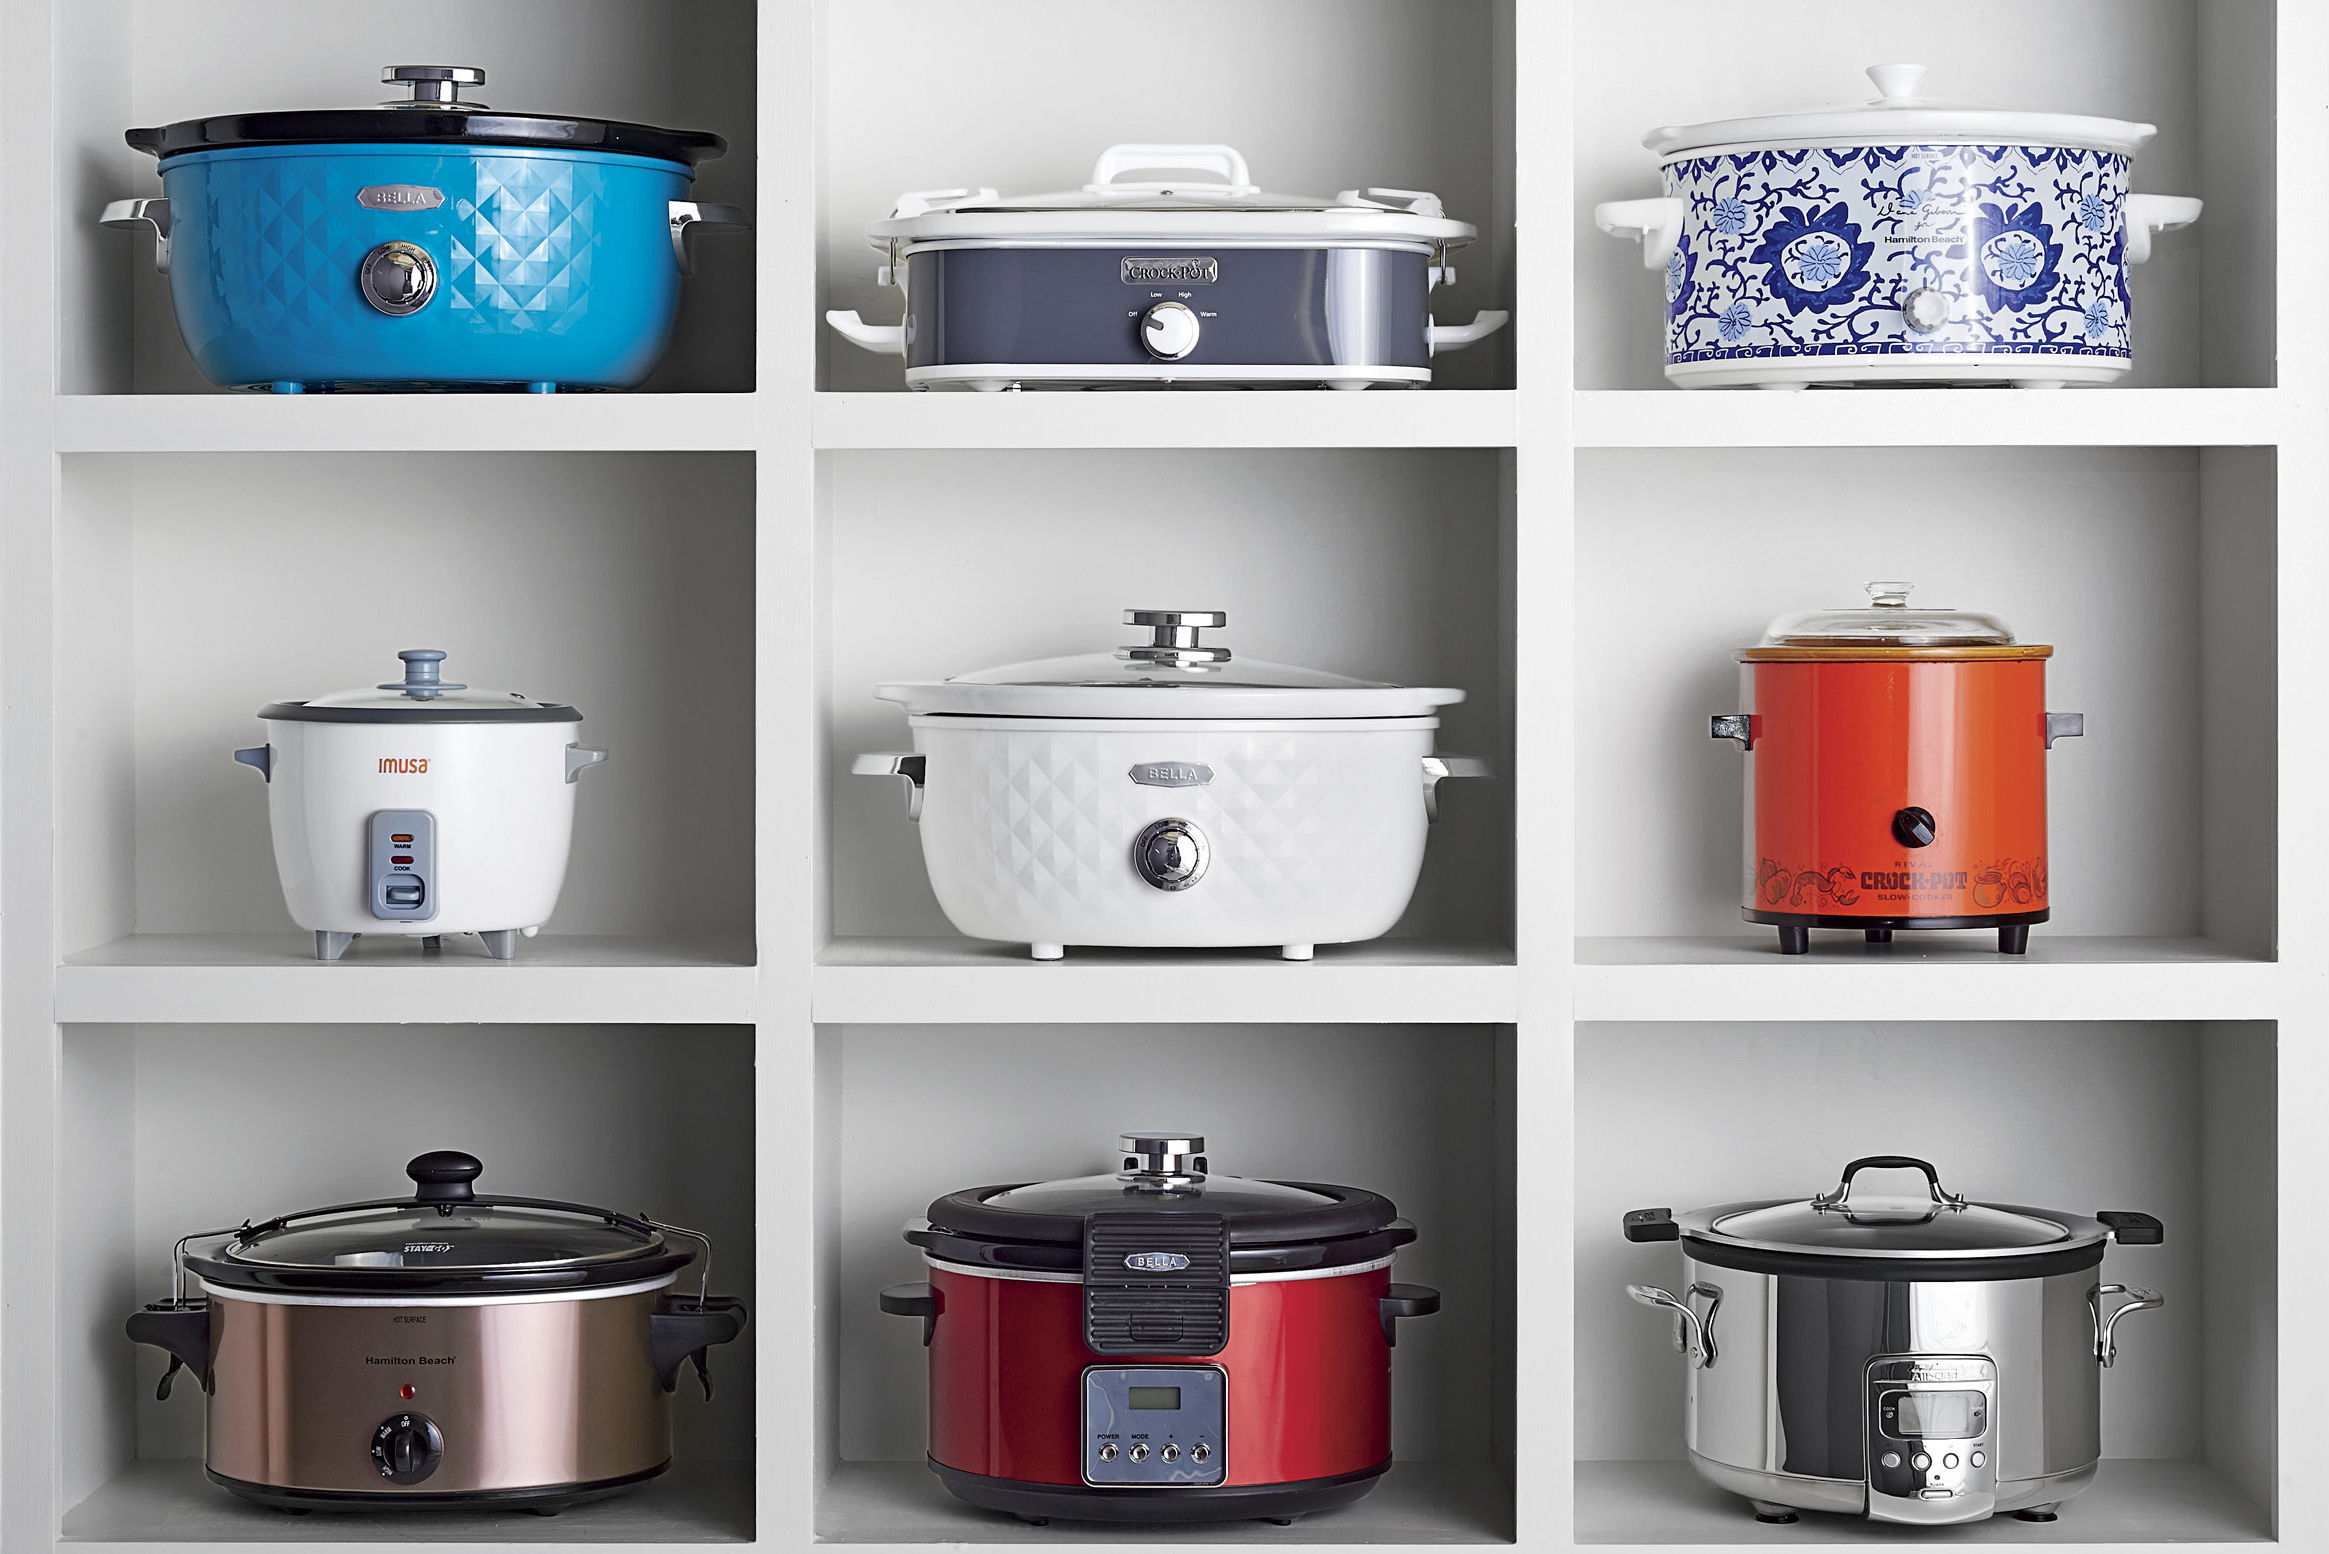 What's the Difference Between a Slow Cooker and an Instant Pot?